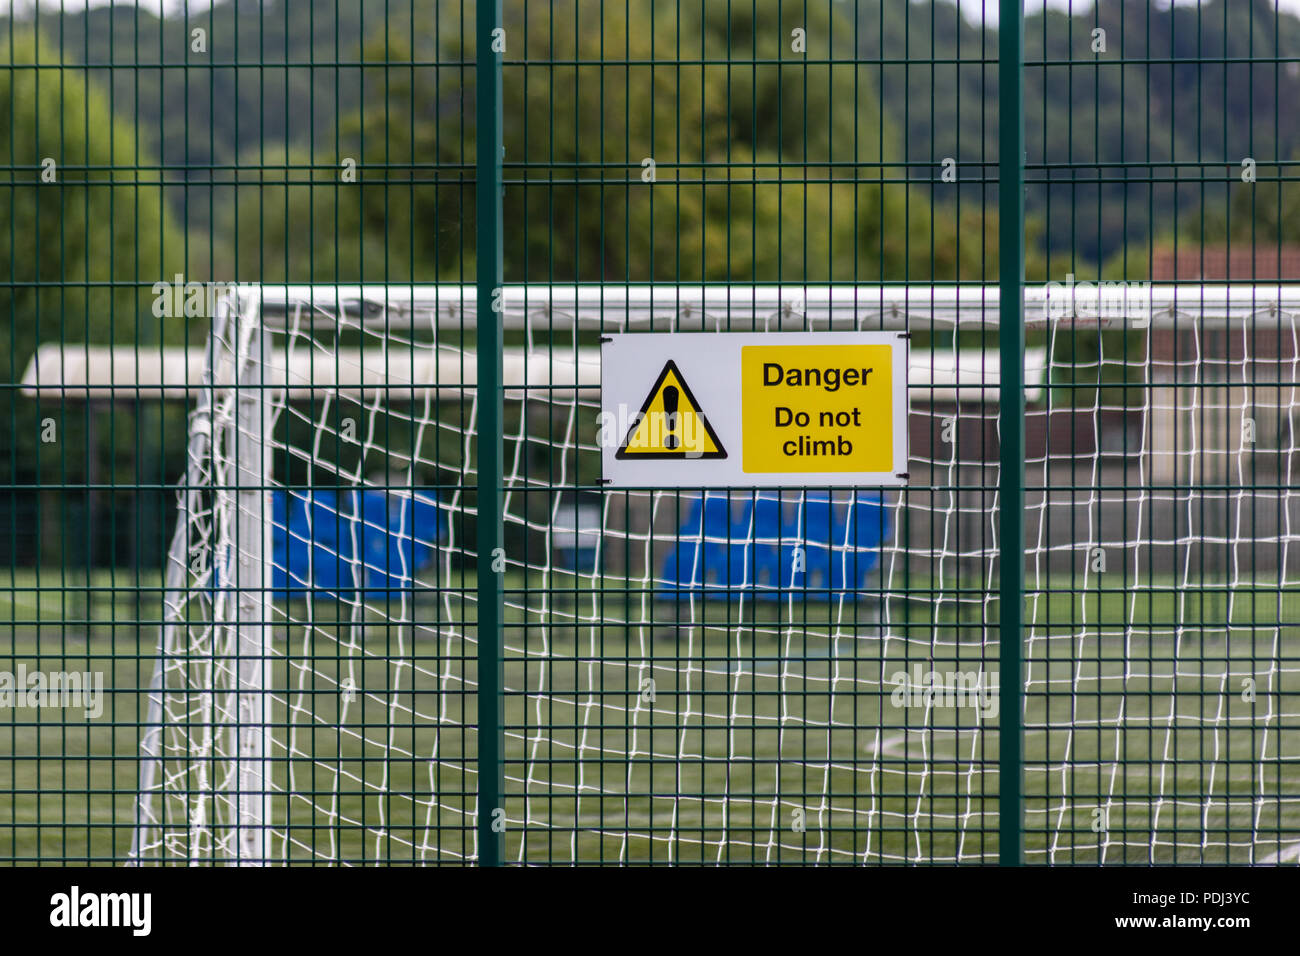 Sign warning of danger on a rigid metal grid fence with football goal posts visible behind the wire fence - Stock Image